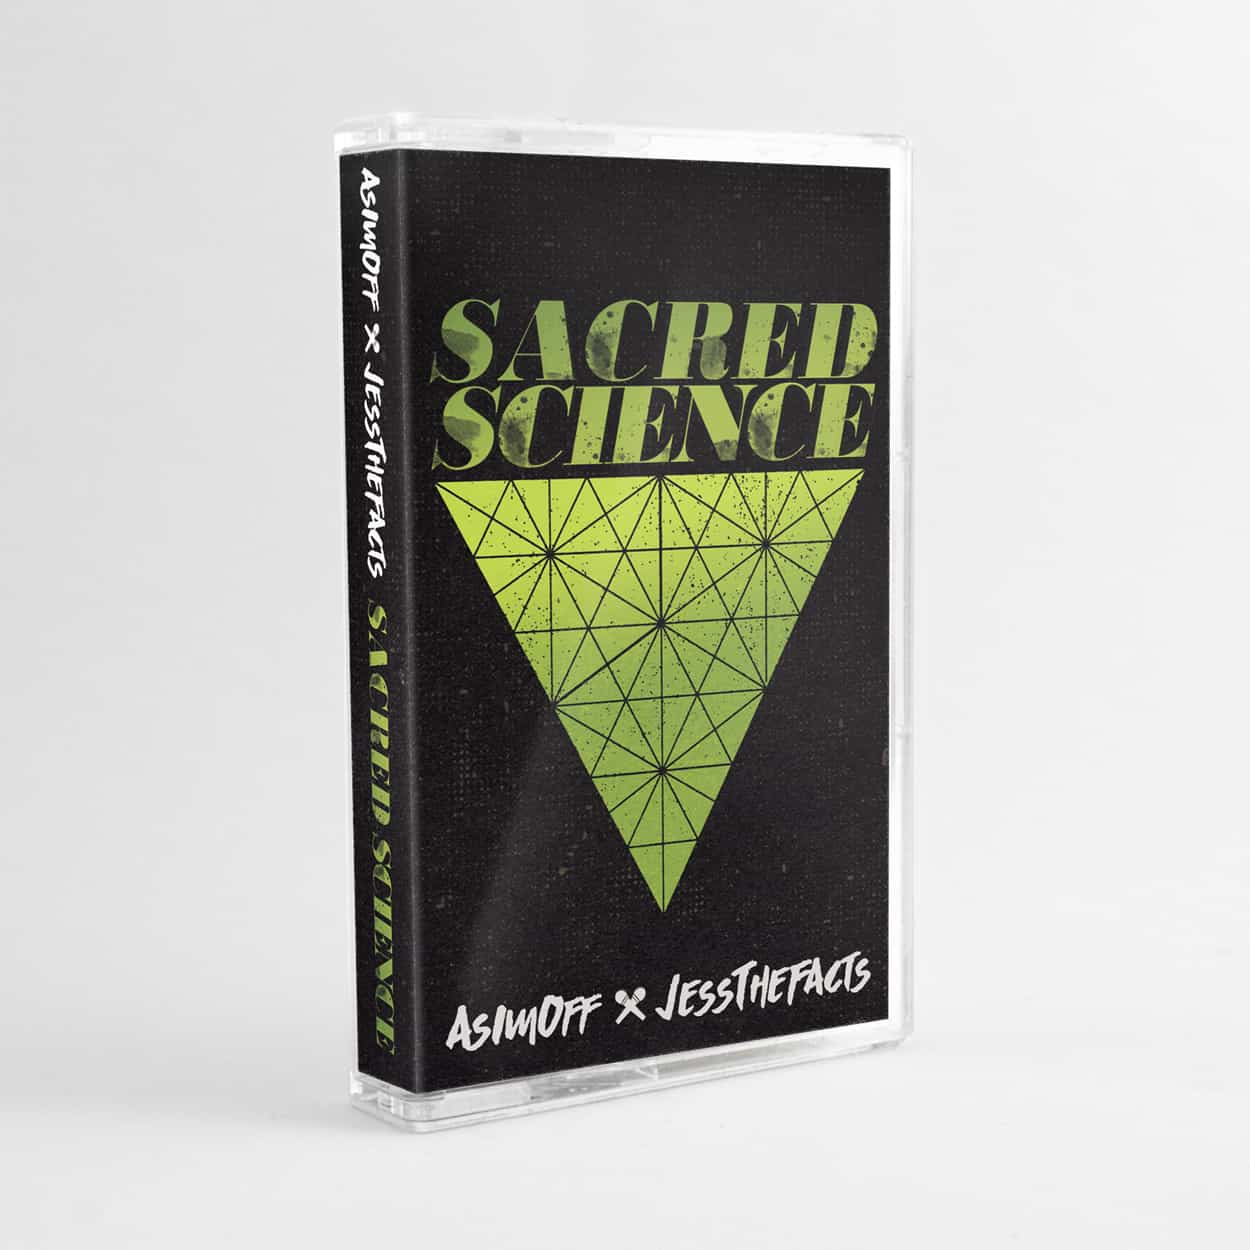 sacred science - cassette tape design